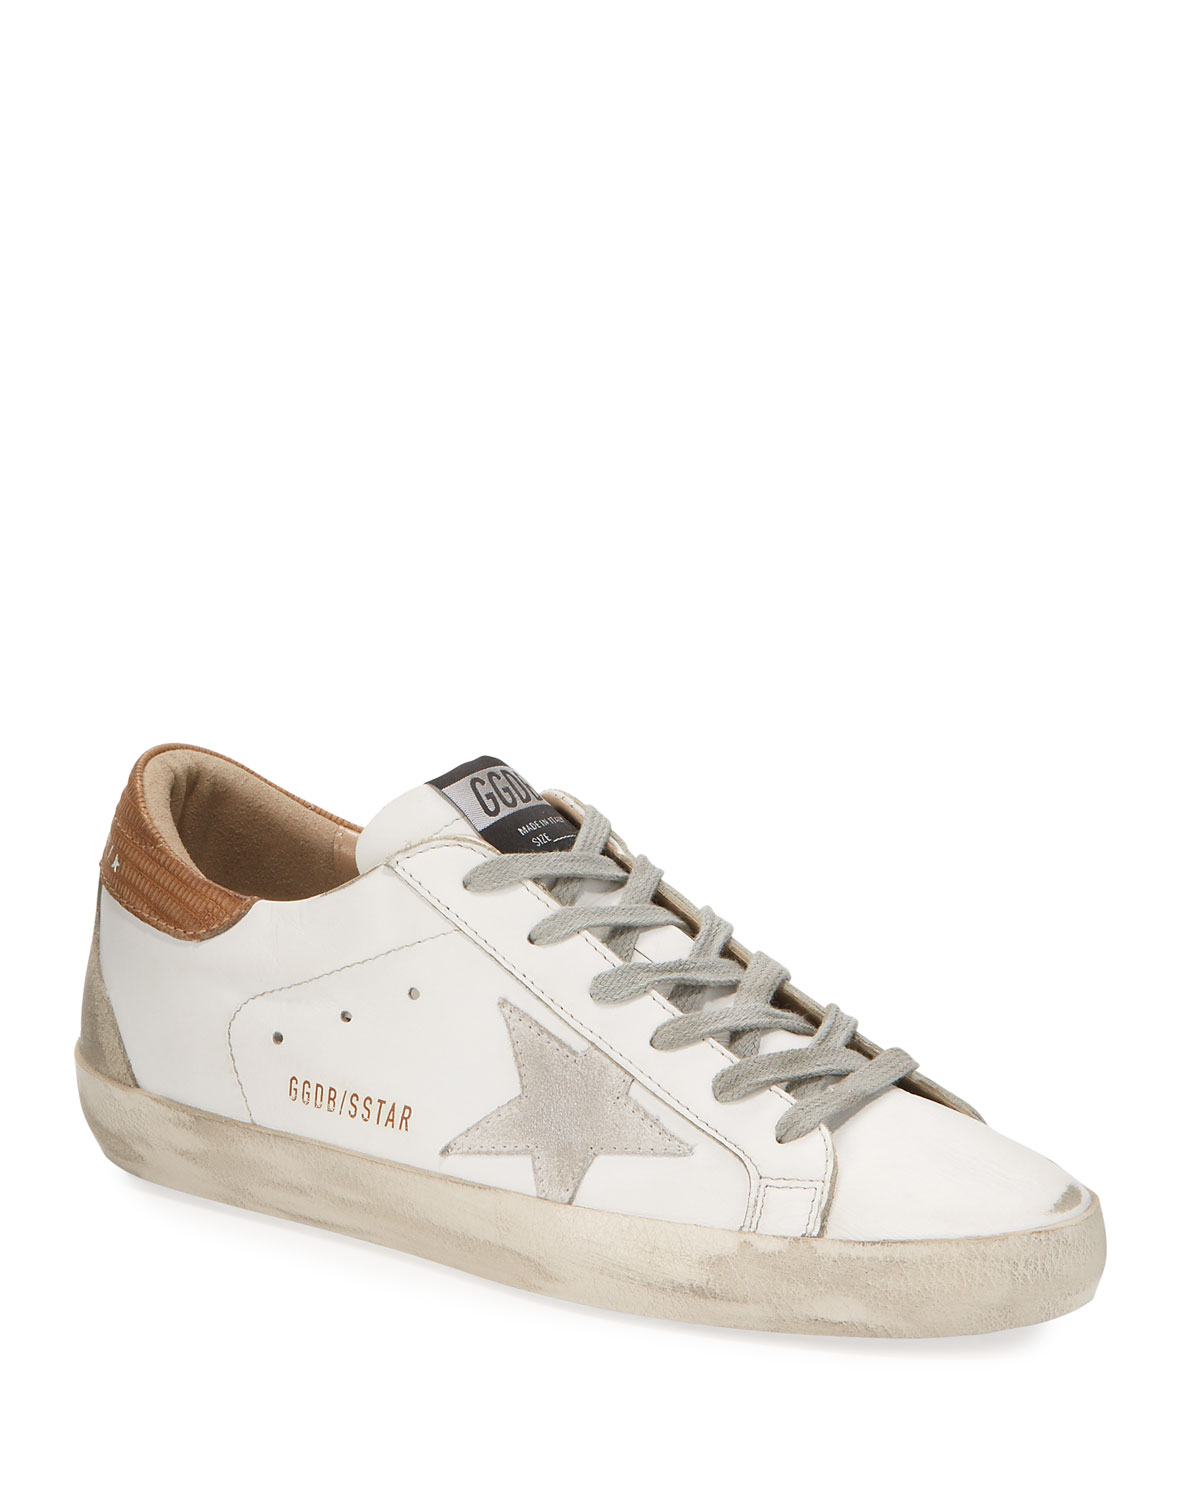 Golden Goose Superstar Leather Lace-Up Sneakers